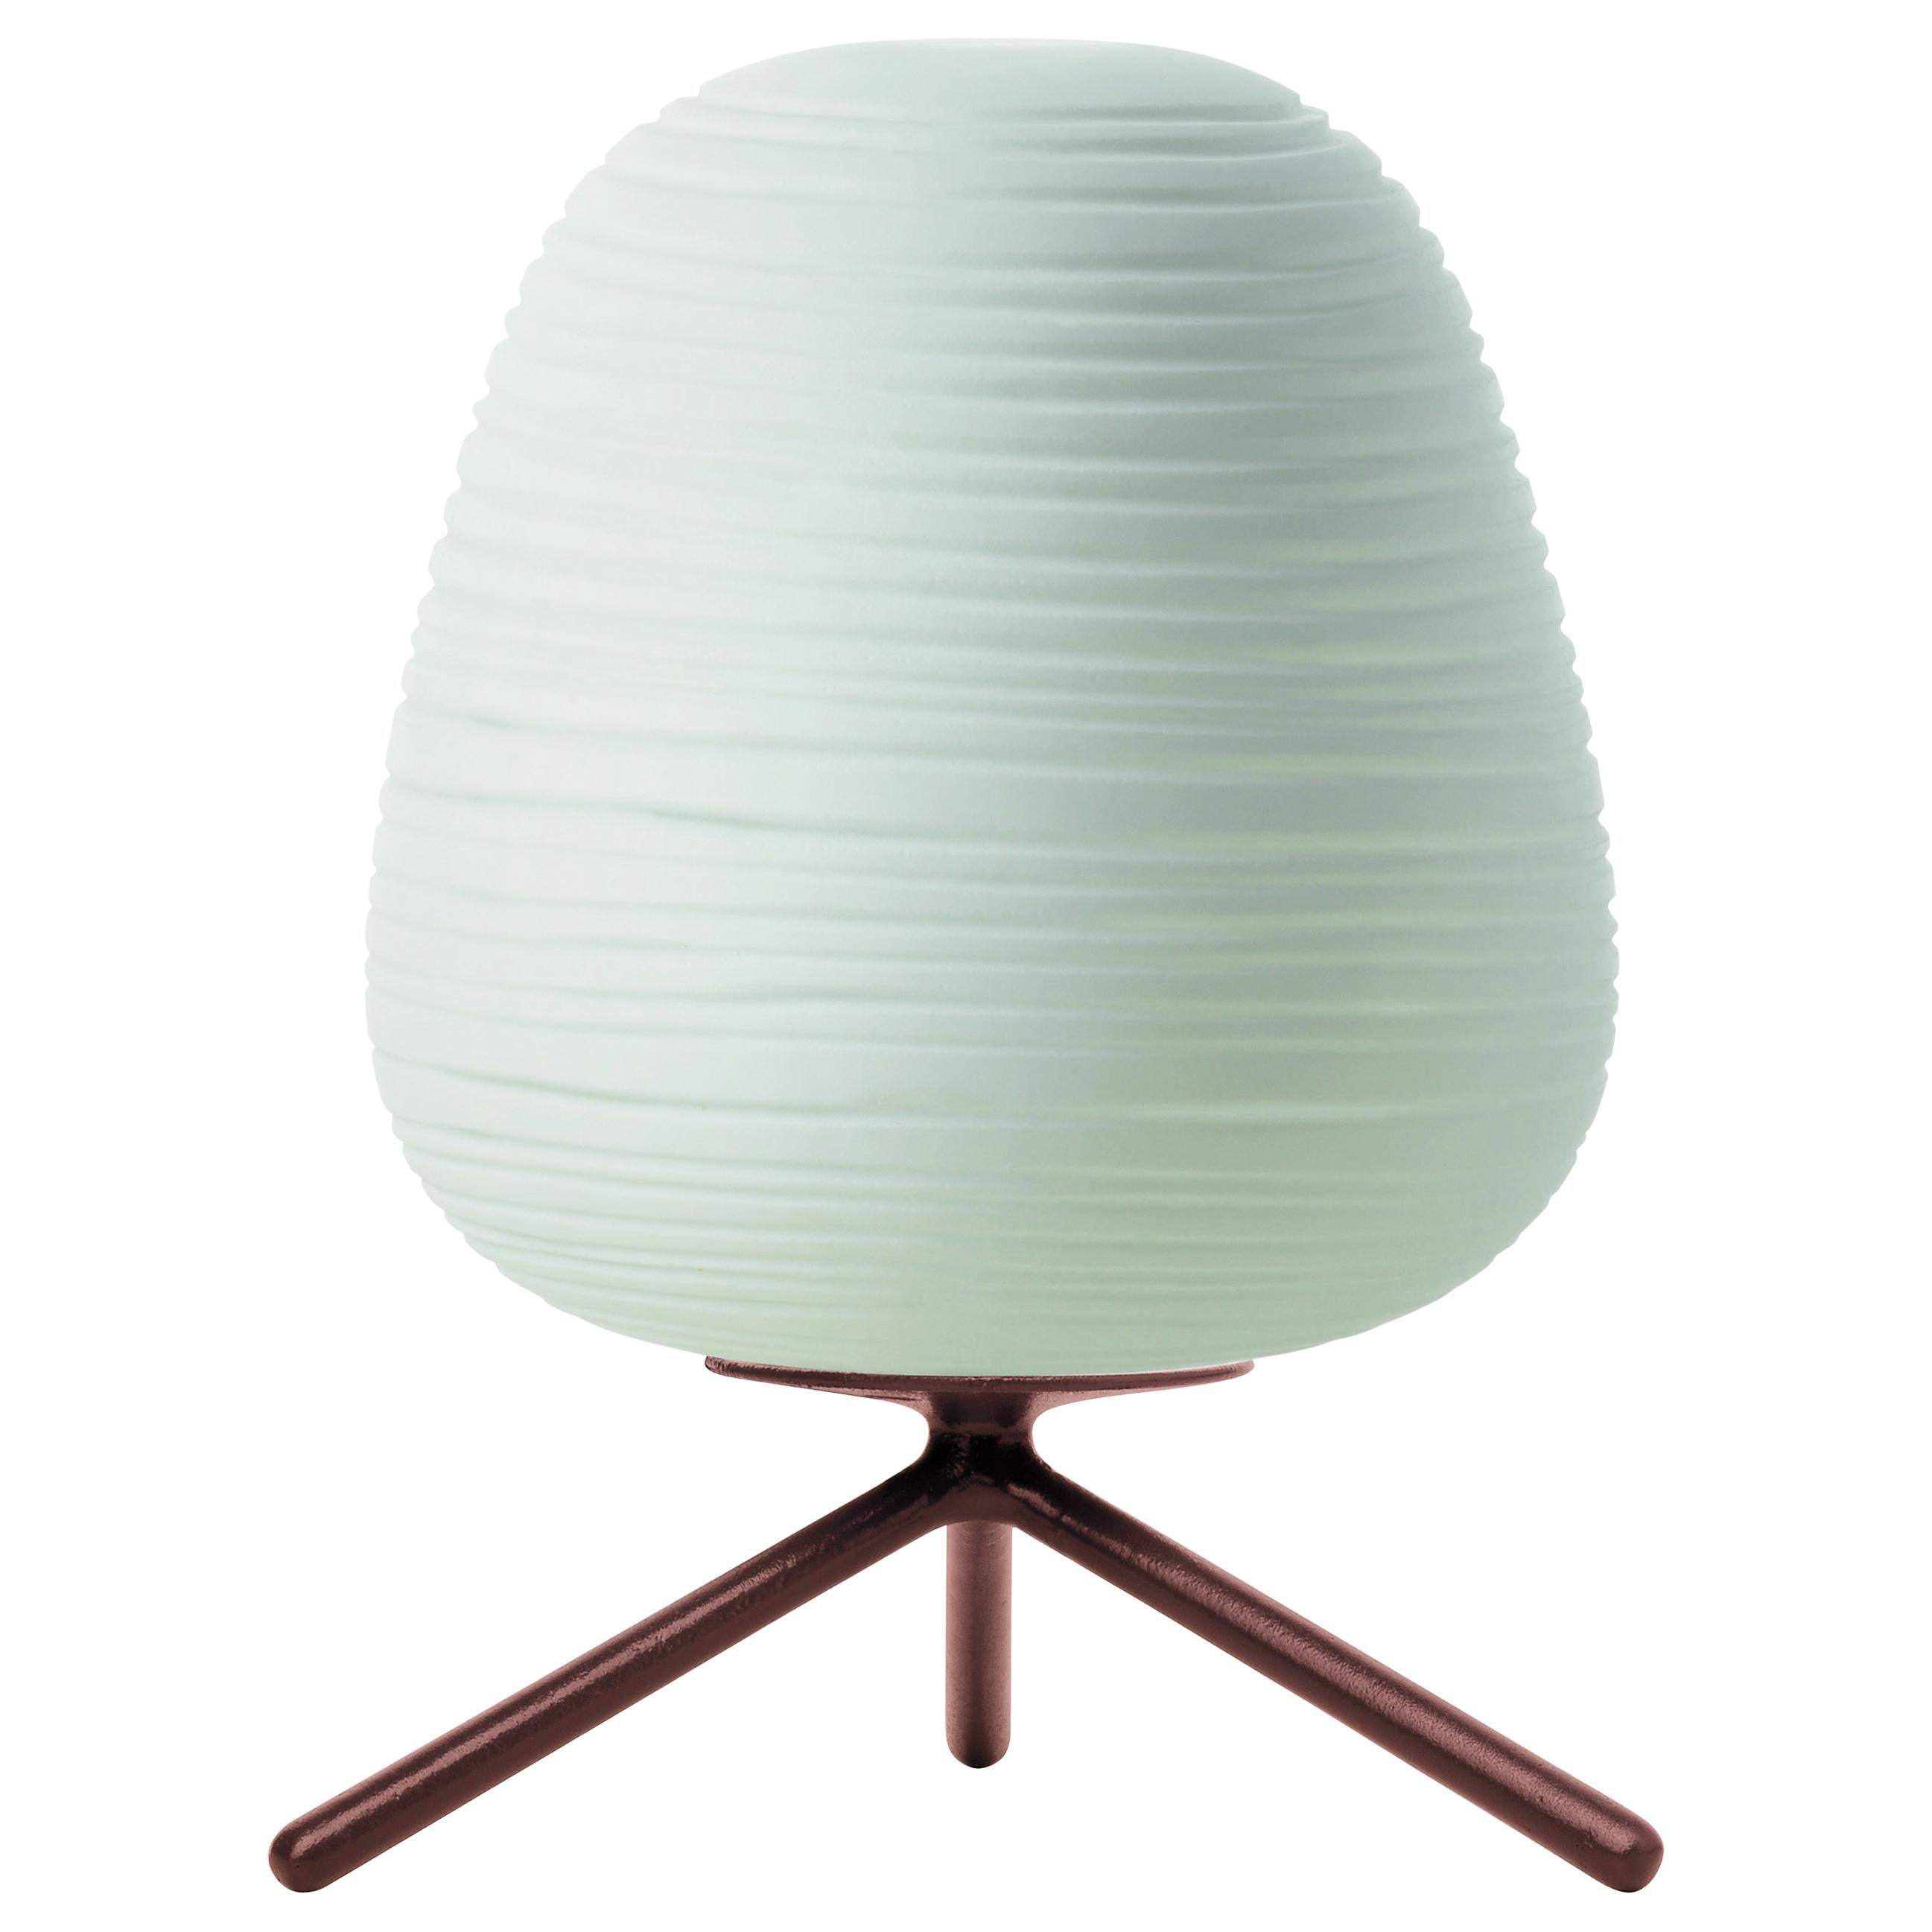 Foscarini Rituals 3 Table Lamp White by Ludovica & Roberto Palomba